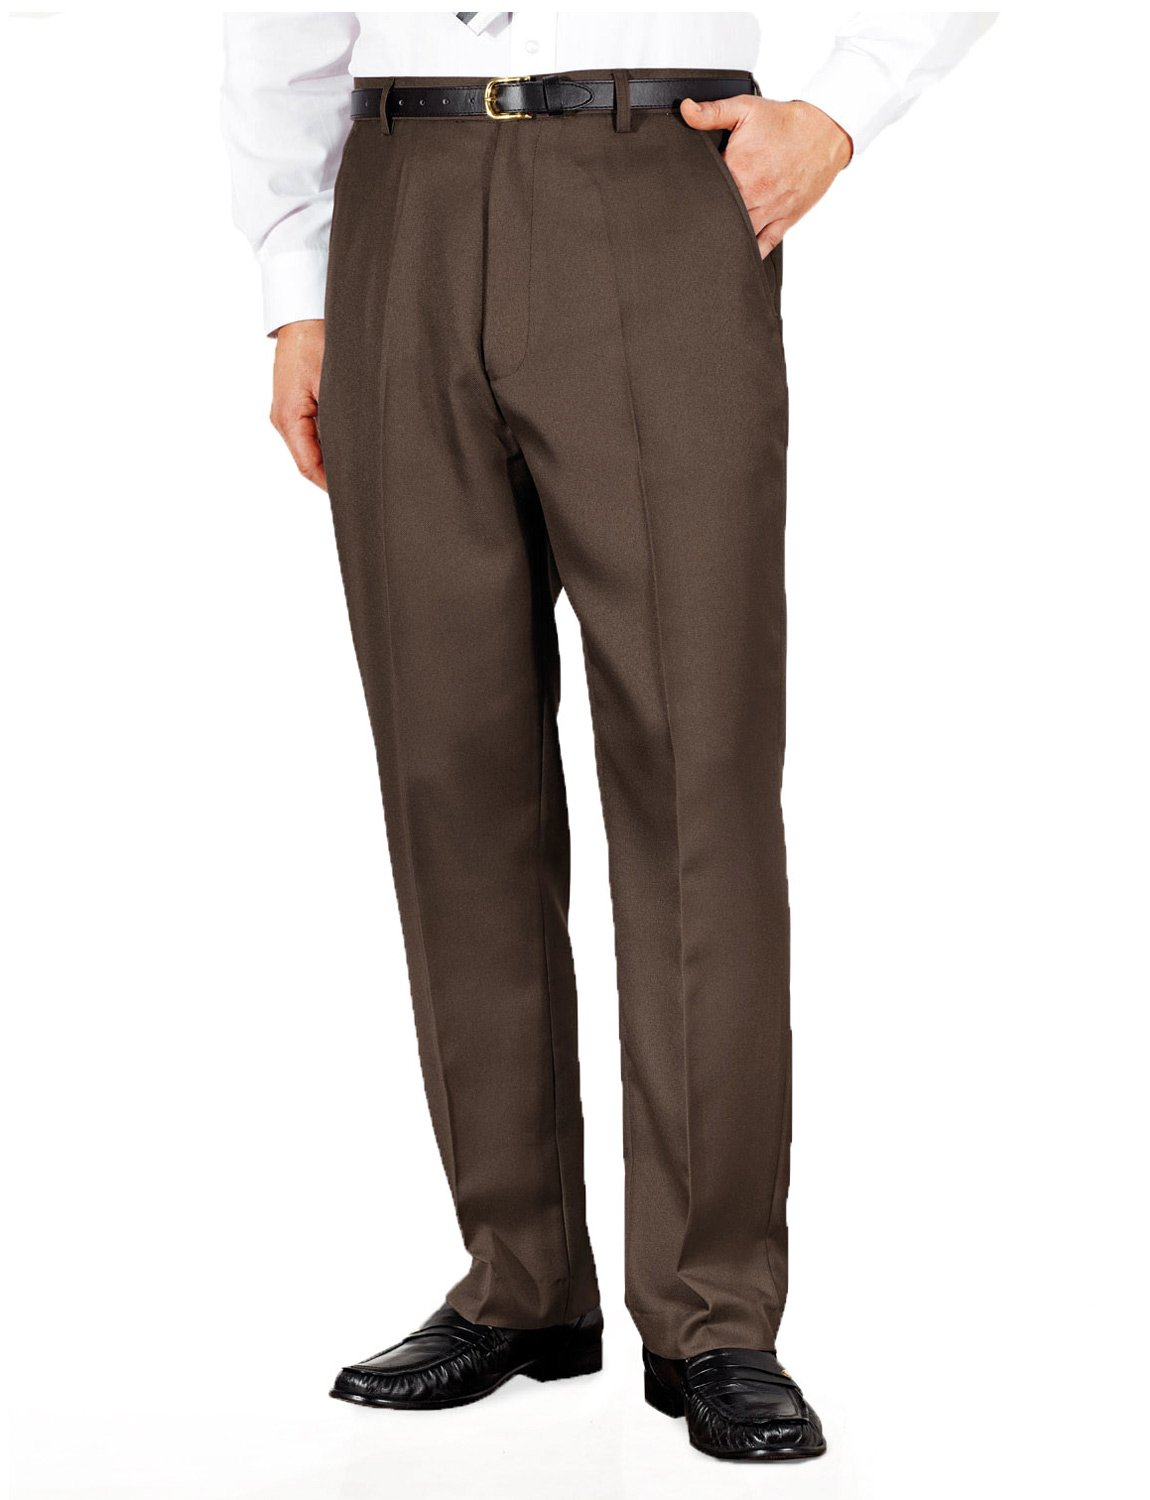 Mens Quality Formal Smart Casual Work Trousers Home/Office Chums